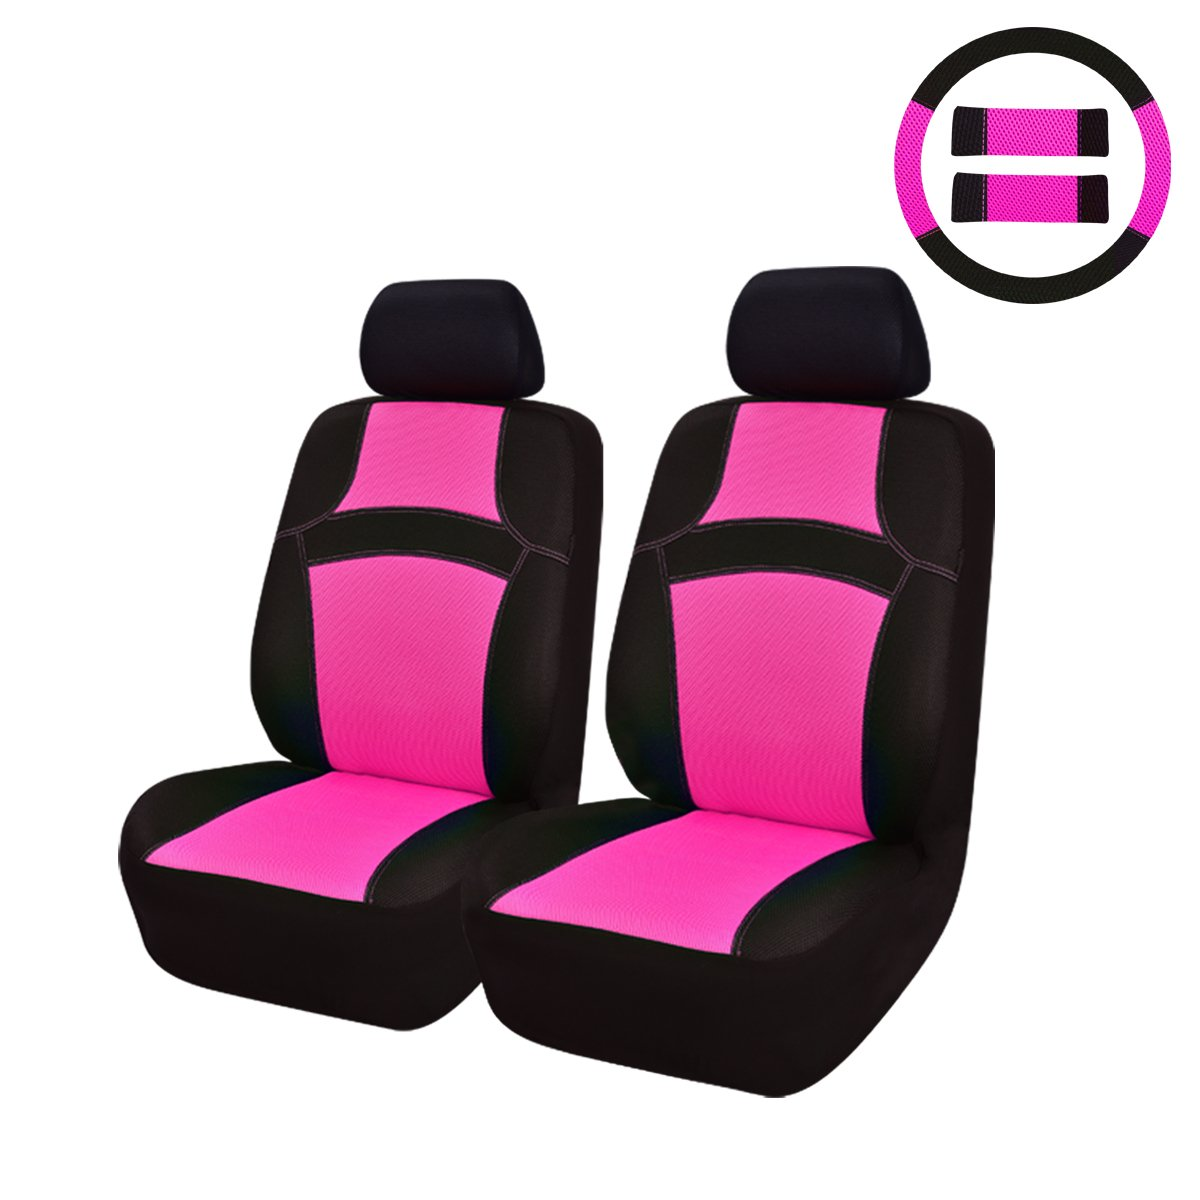 NEW ARRIVAL- CAR PASS RAINBOW Universal Fit Car Seat Cover -100% Breathable With 5mm Composite Sponge Inside,Airbag Compatible (9pcs, Rose Pink) LJ